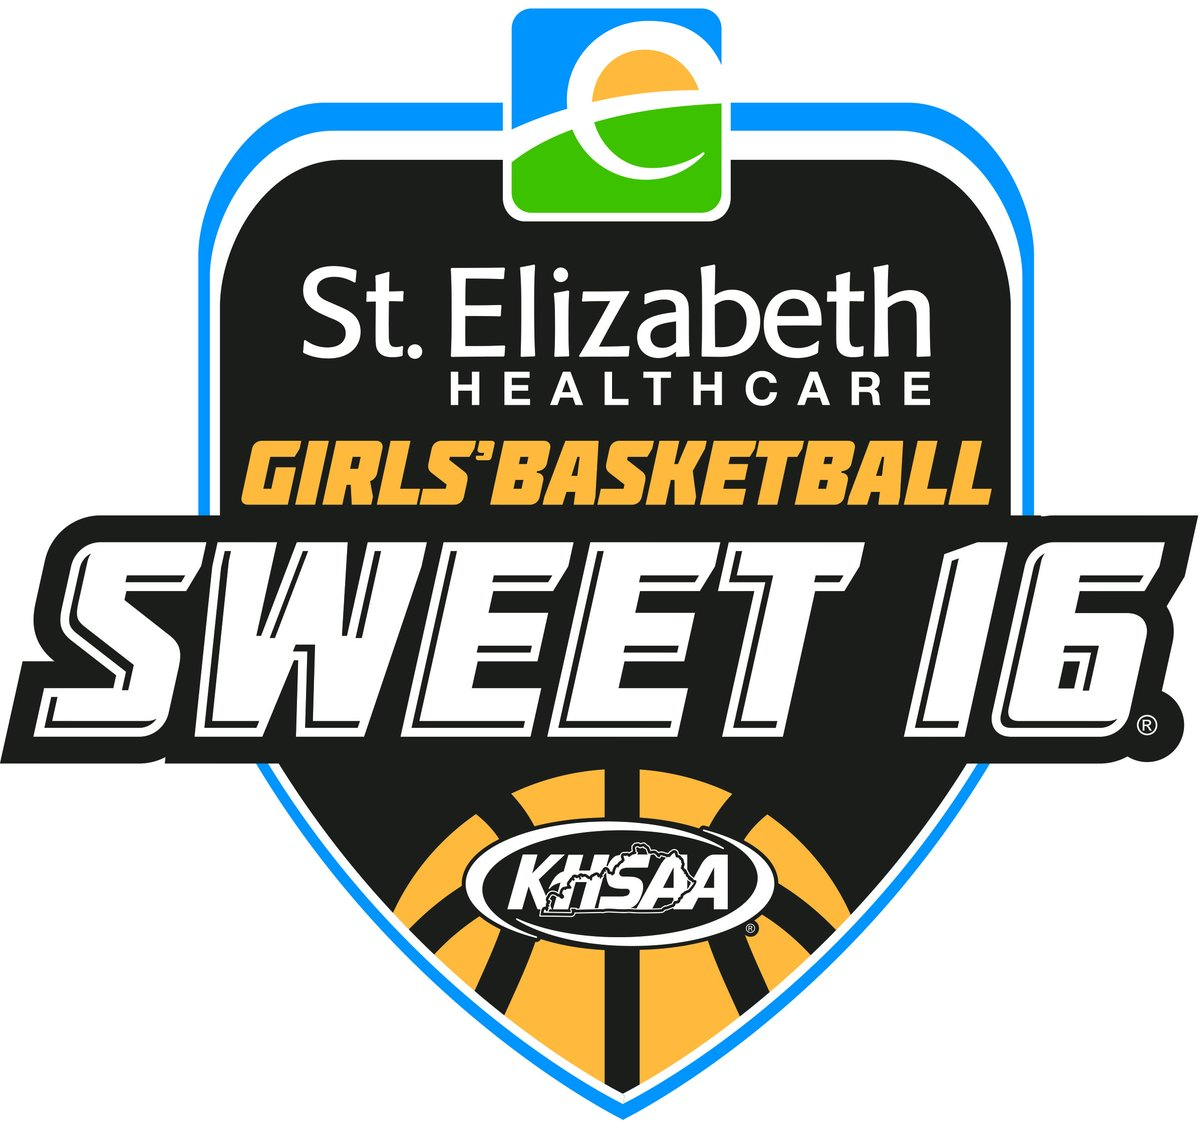 Owensboro Catholic wins at Girls Sweet 16